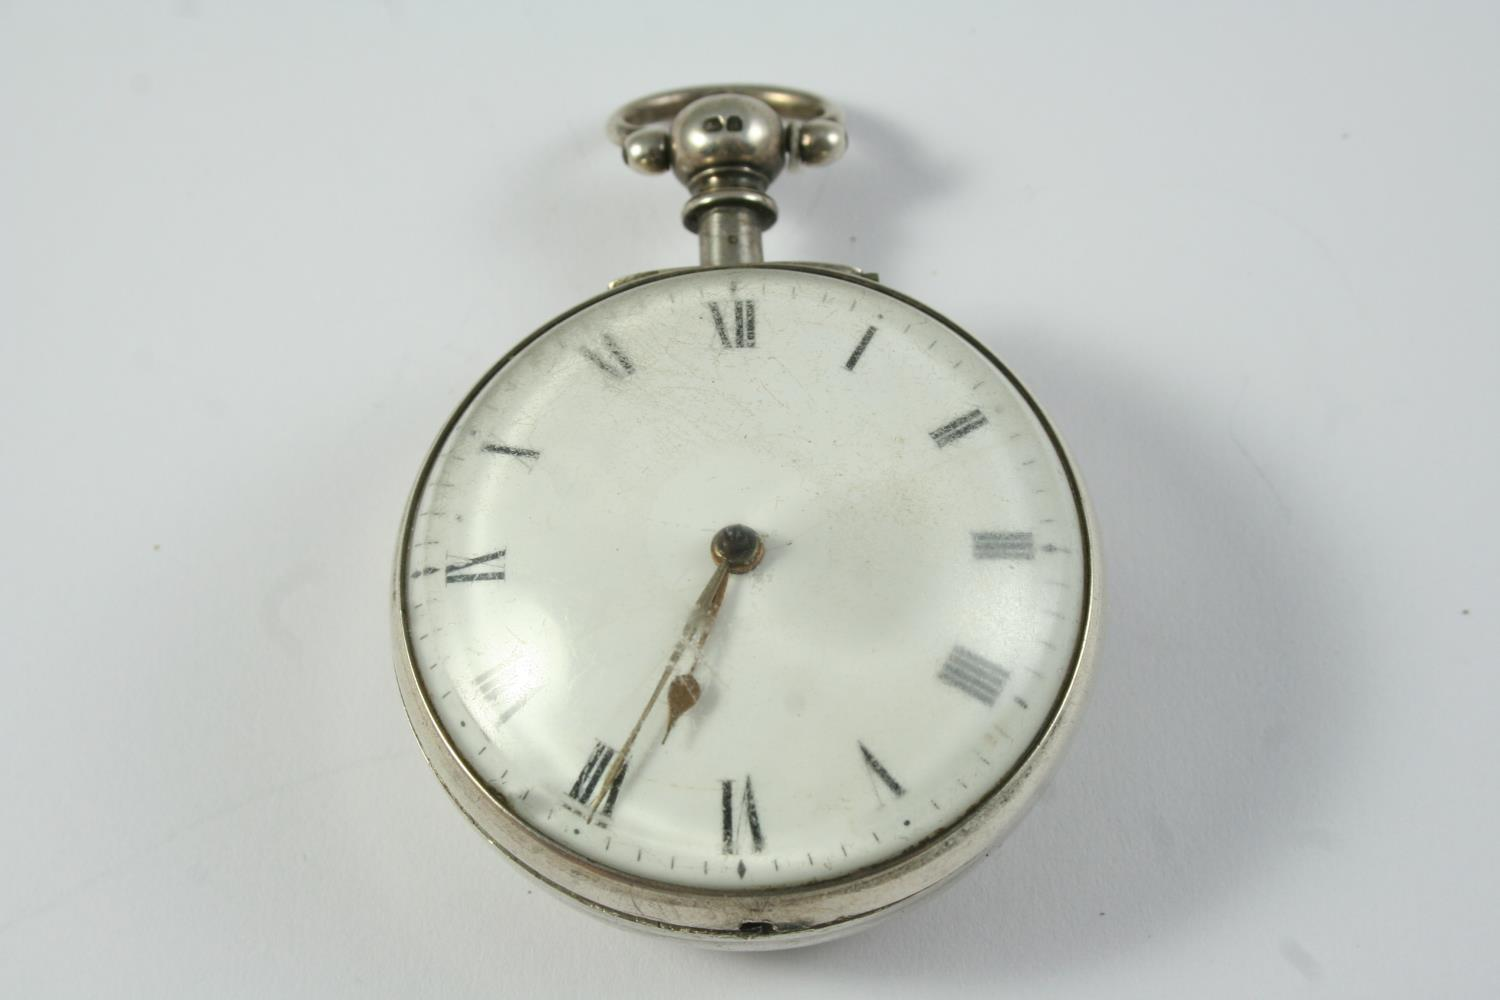 A SILVER PAIR CASED VERGE POCKET WATCH the white enamel dial with Roman numerals, the movement - Image 4 of 5